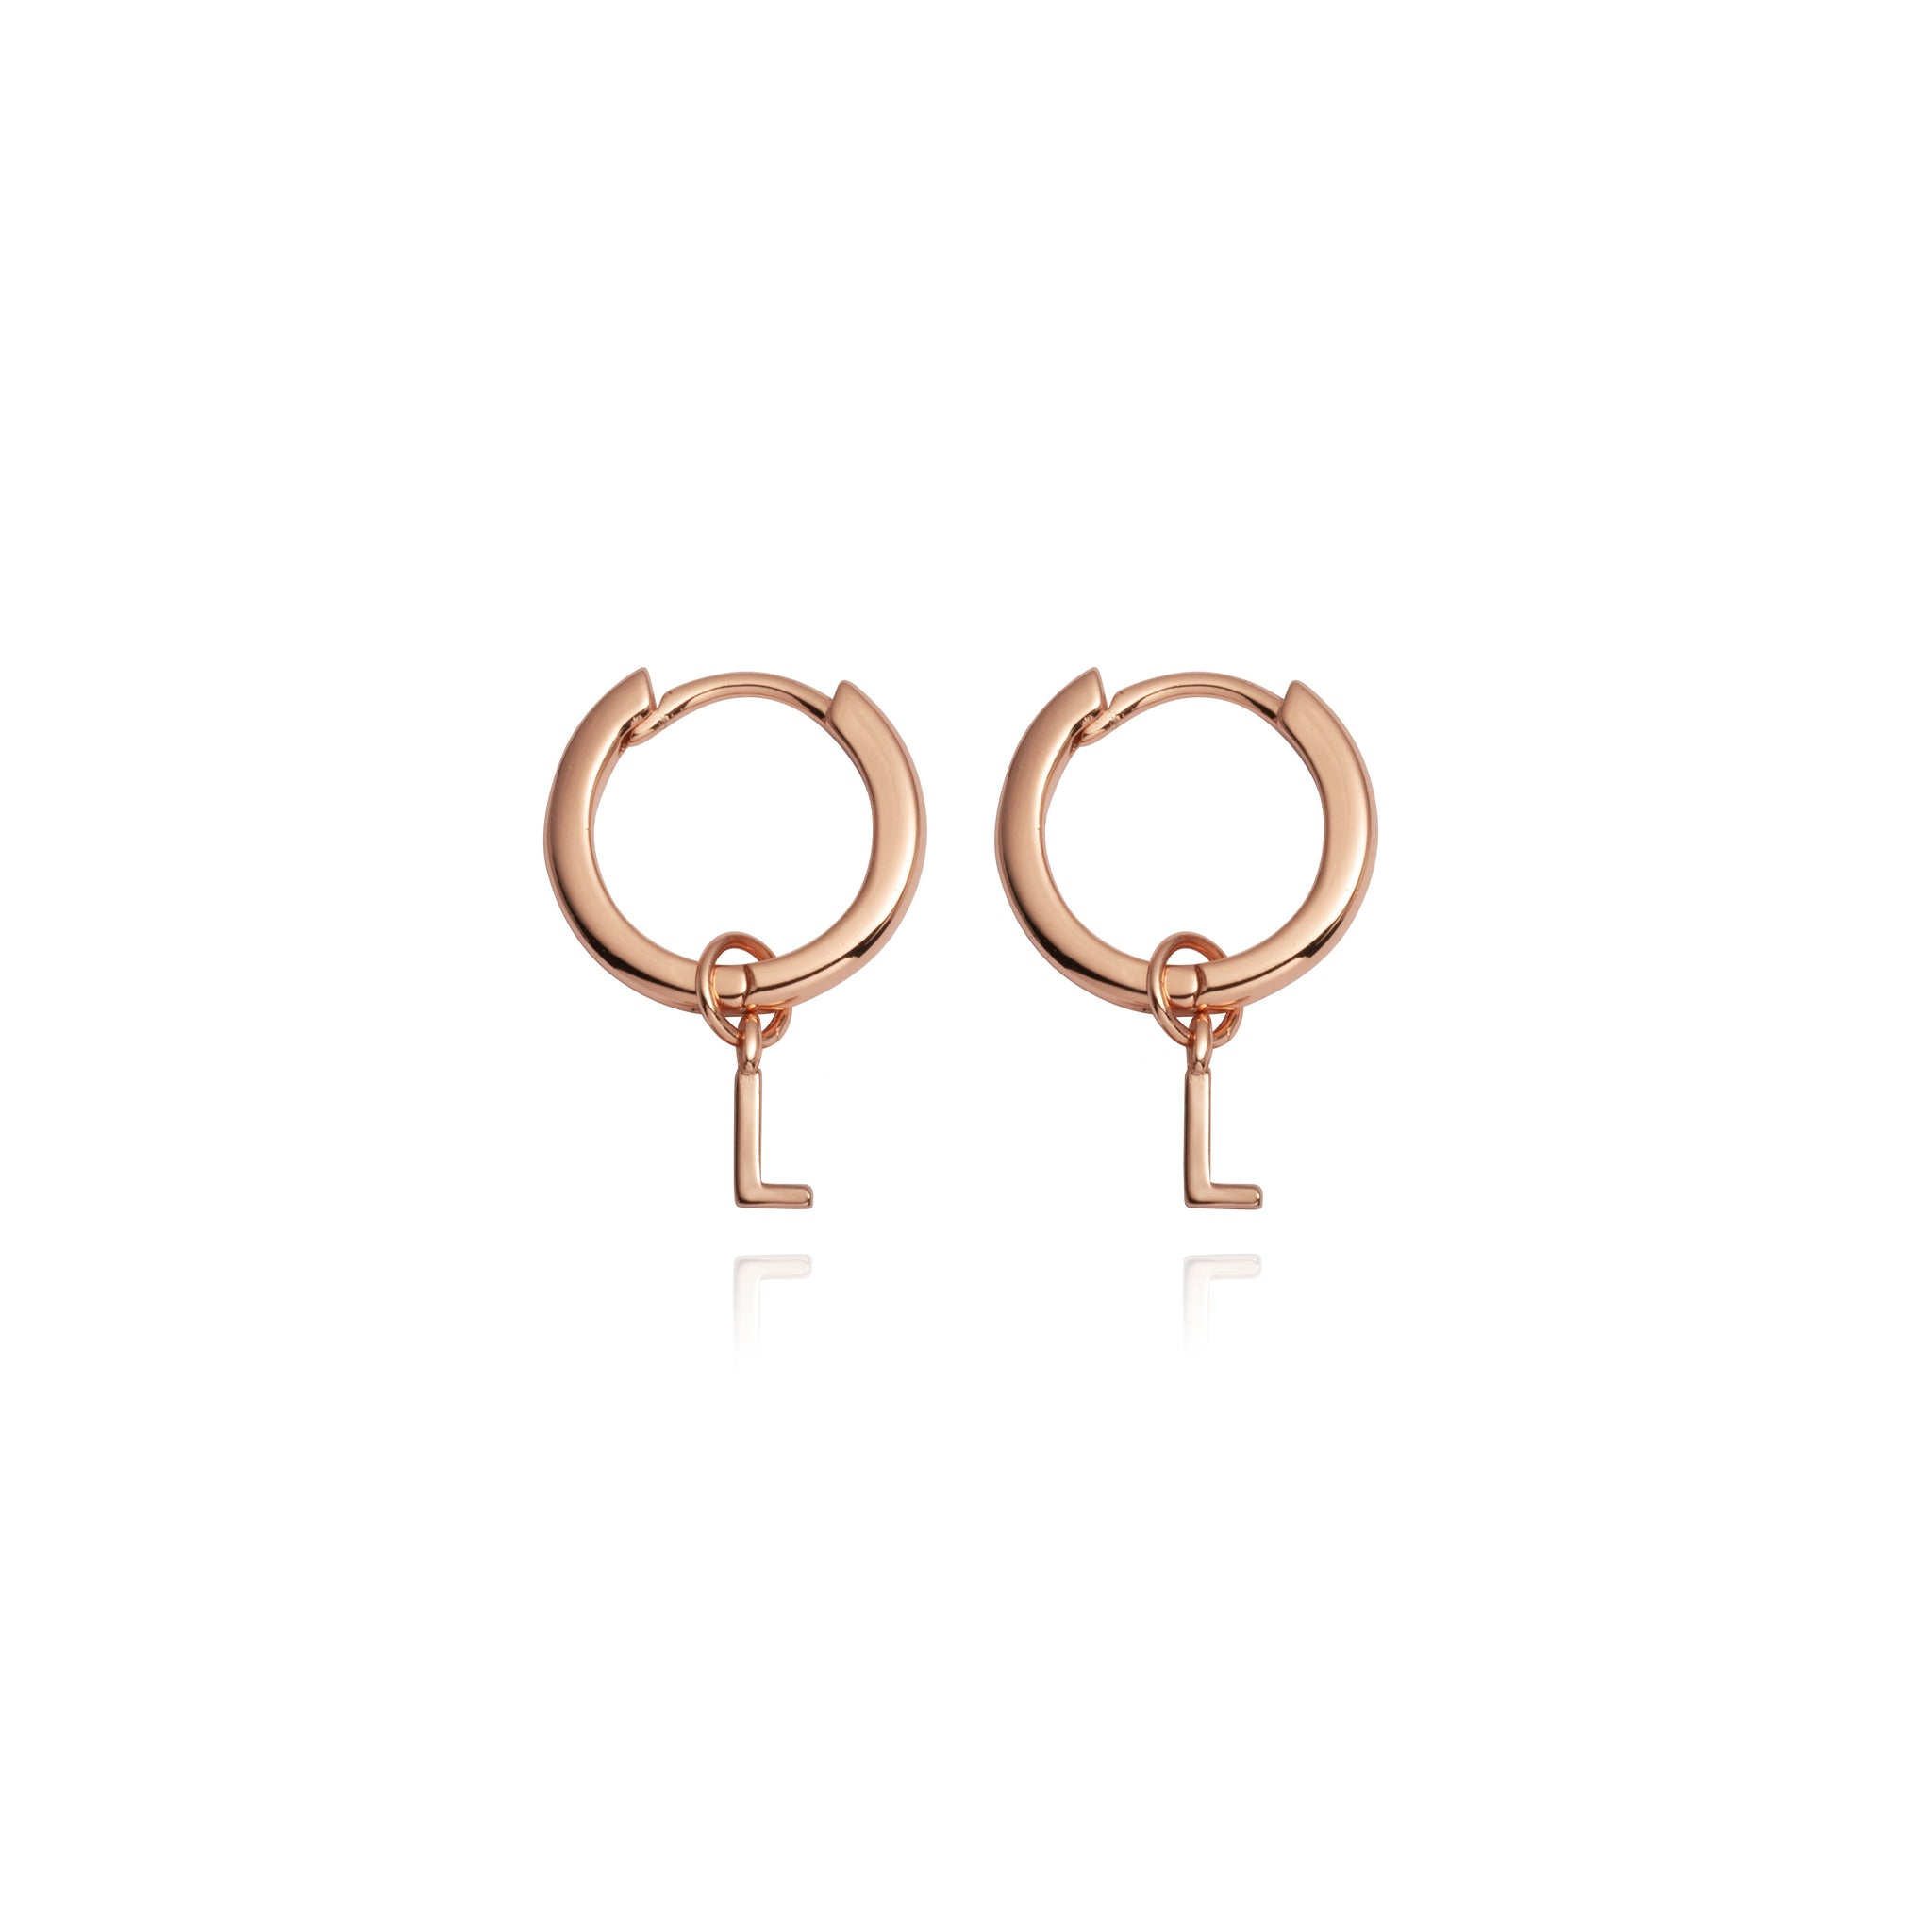 Sterling Silver Letter Pendant Earrings (Rose Gold)